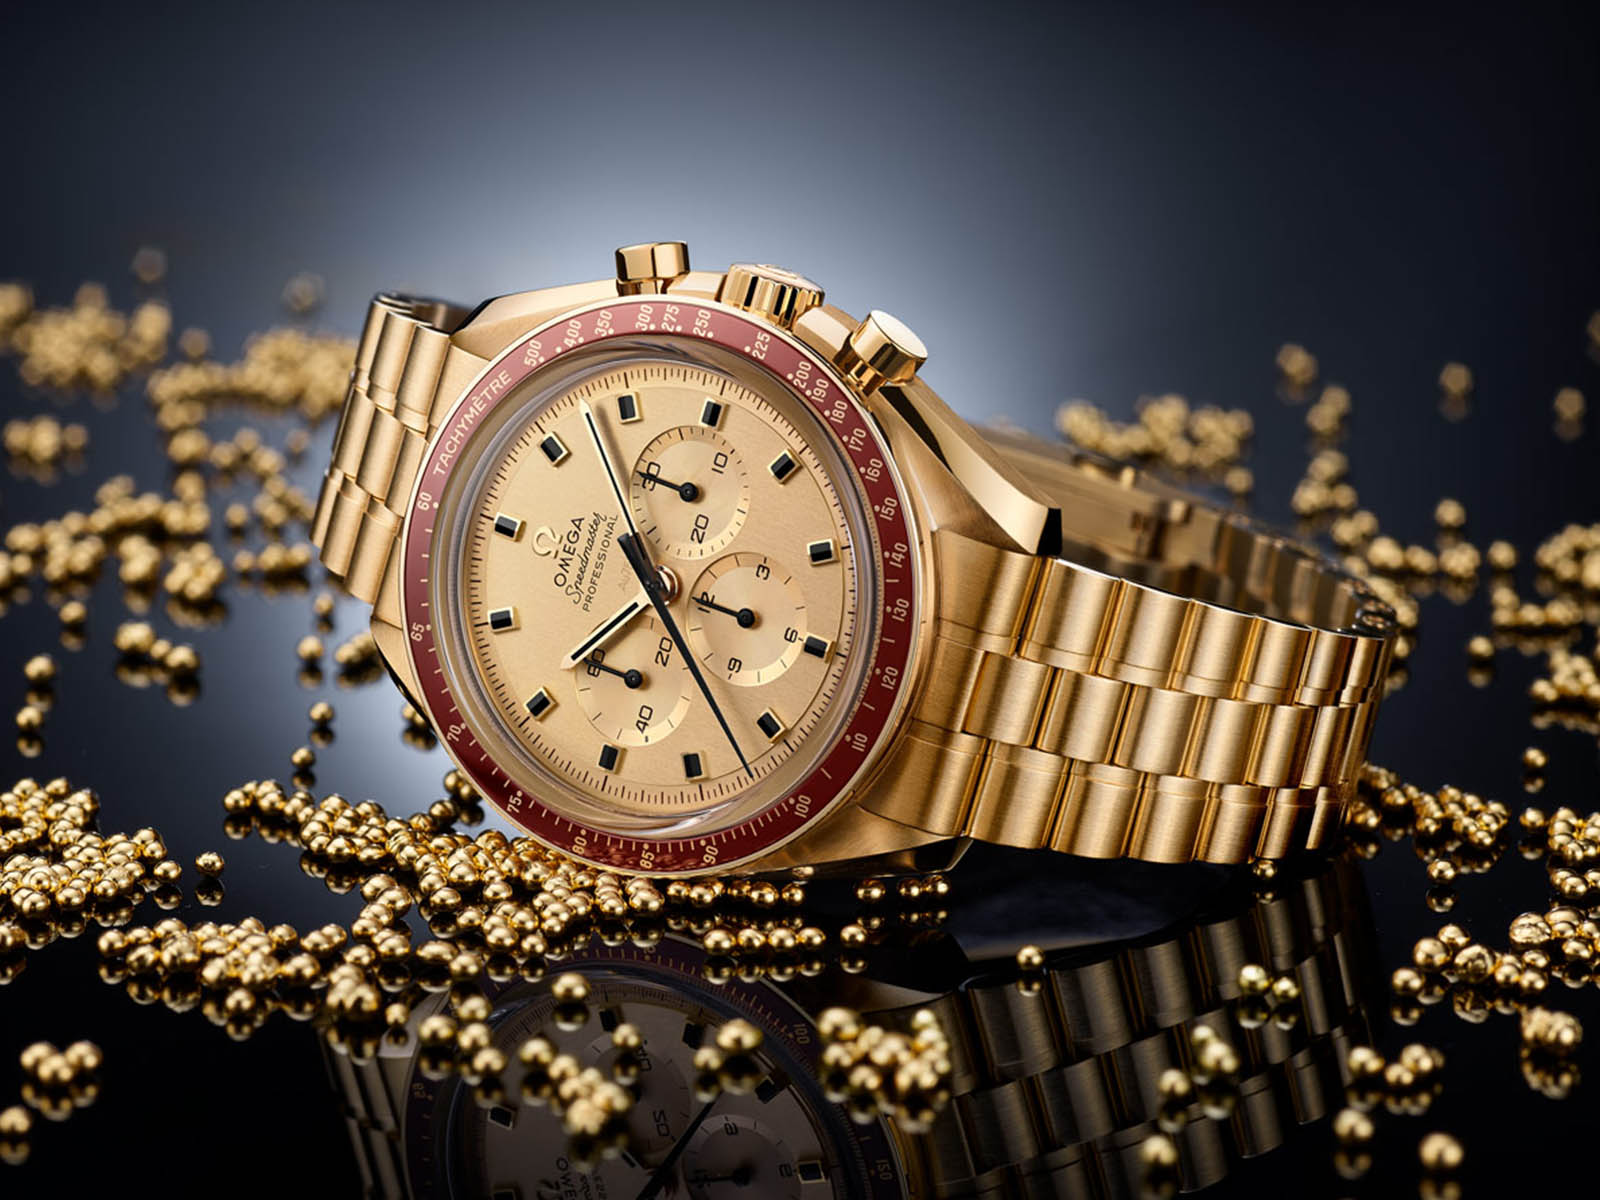 310-60-42-50-99-001-omega-speedmaster-apollo-11-50th-anniversary-1.jpg